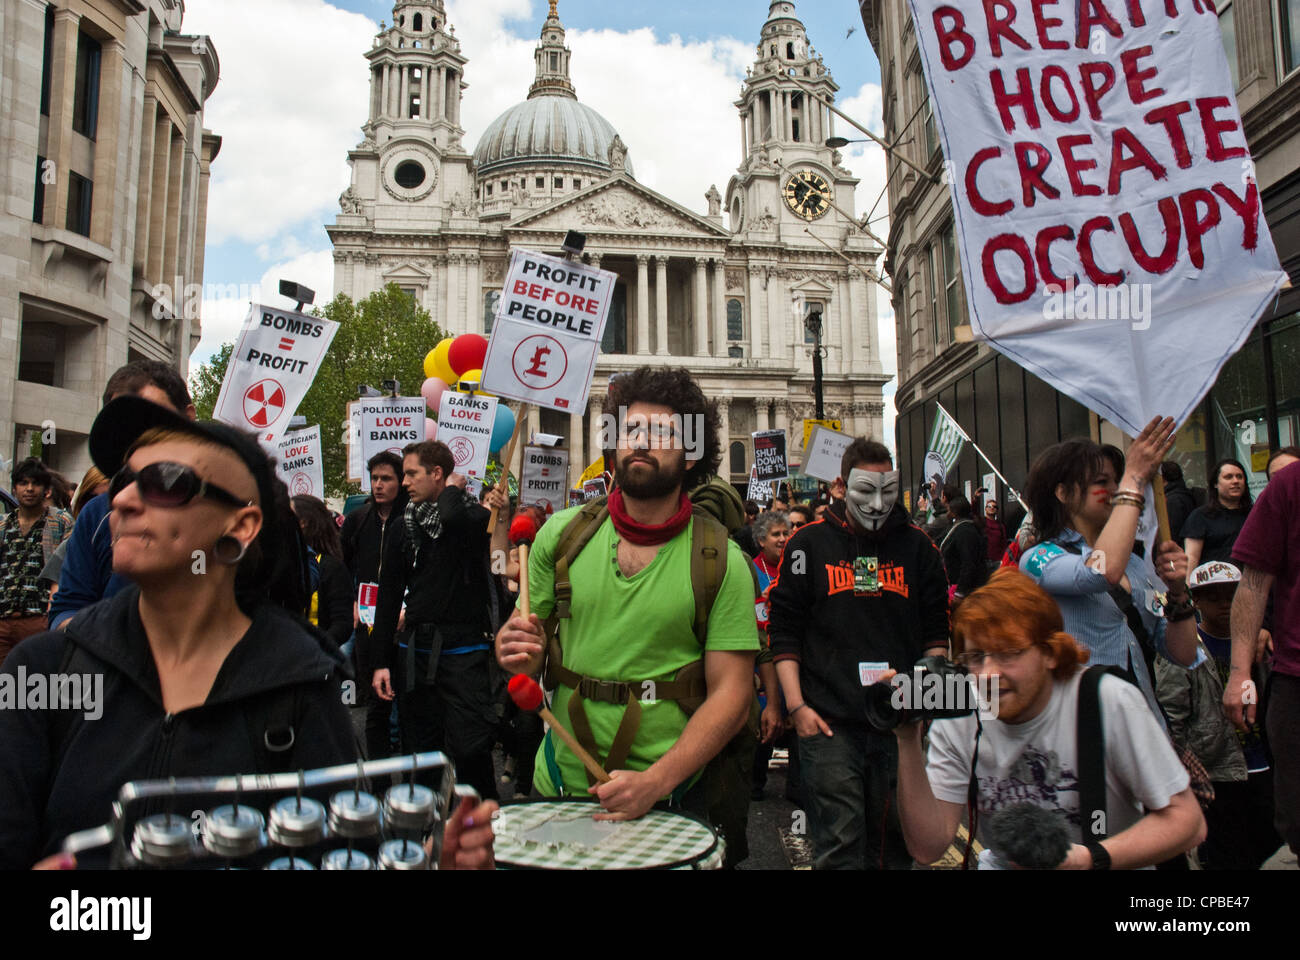 Occupy, London UK. Anti capitalism demonstration in the financial district, part of a global day of action. - Stock Image